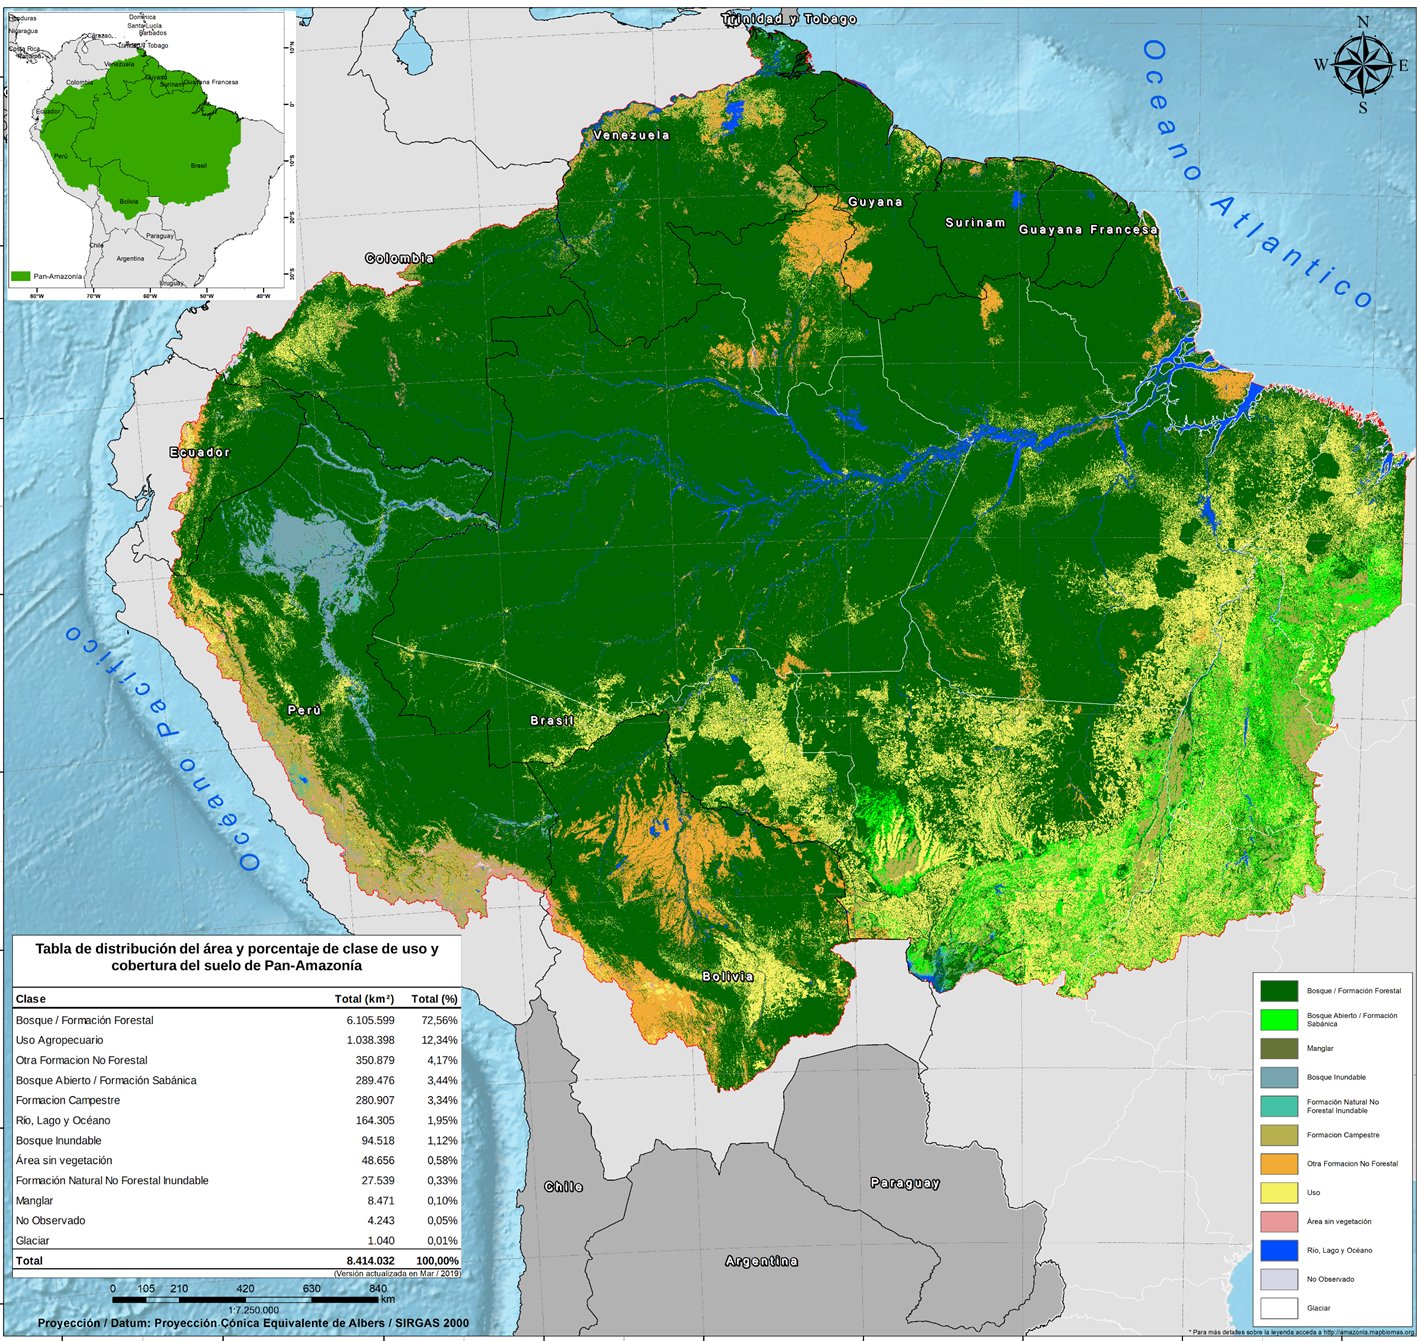 The Amazon lost in the last 17 years the equivalent ... on map of rio de janeiro, iguazu falls, temperate rainforest, amazon basin, amazon river, map of europe, map of angel falls, map of chile, map of brazil, map of vatnajokull glacier, map of ecuador, map of galapagos islands, map of brazilian highlands, map of amazon river, map of gran chaco, tropical rainforest climate, map of costa rica, peruvian amazon, brazilian highlands, map of iguazu river, map of trobriand islands, map of red sea, daintree rainforest, map of andes, tropical rainforest, map of venezuela, map of amazon basin, tropical and subtropical moist broadleaf forests, map of pacific ocean, map of amazon deforestation,